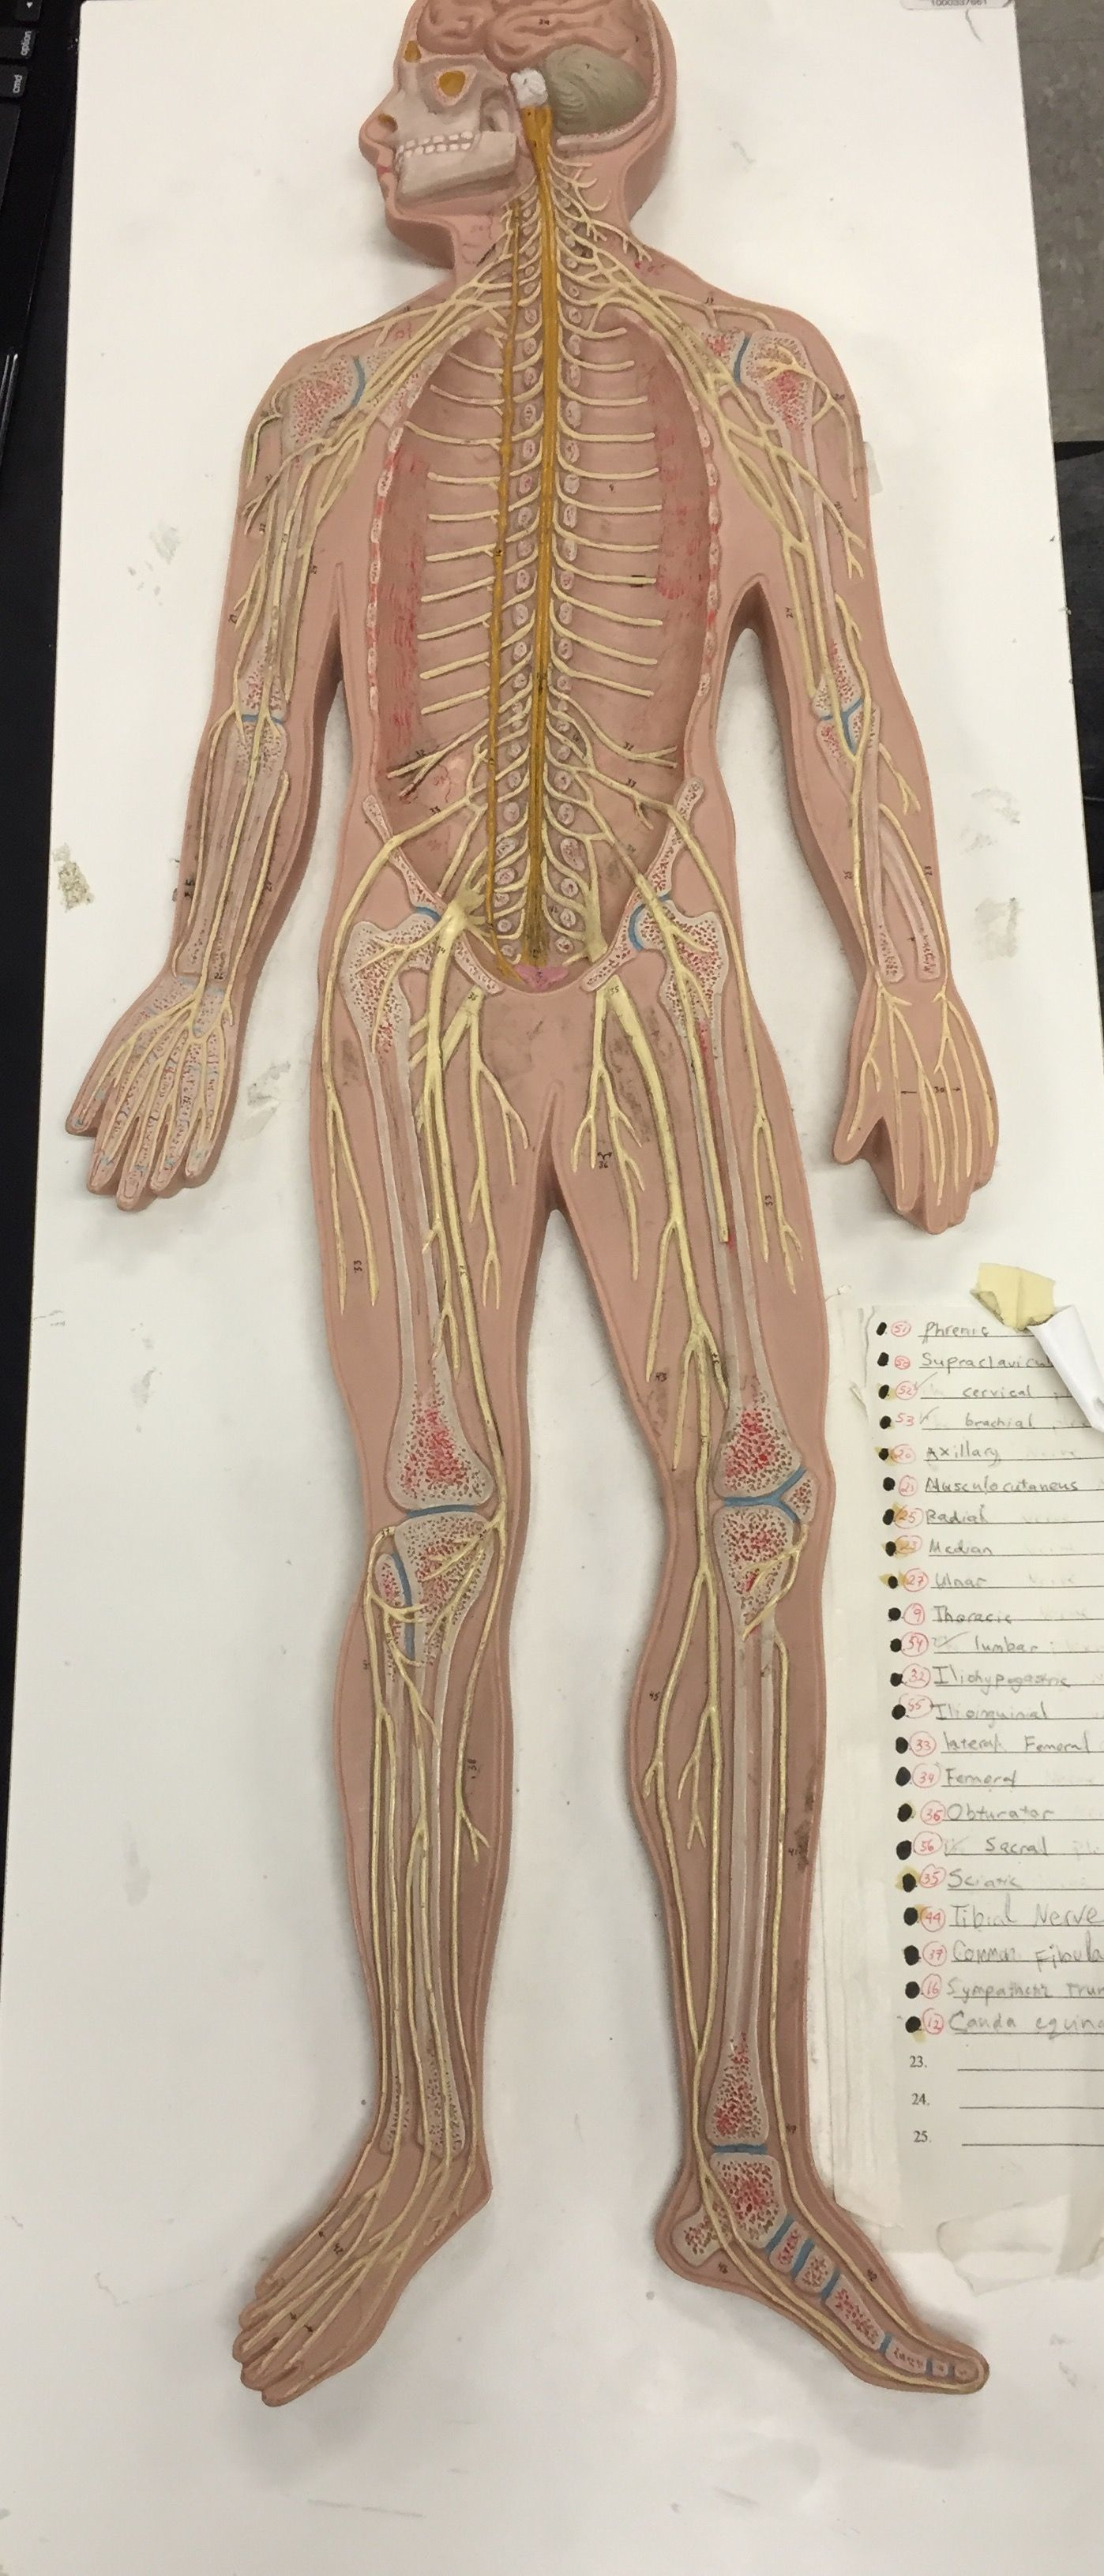 spinal nerves model from LACC | Anatomy/Physiology | Pinterest ...